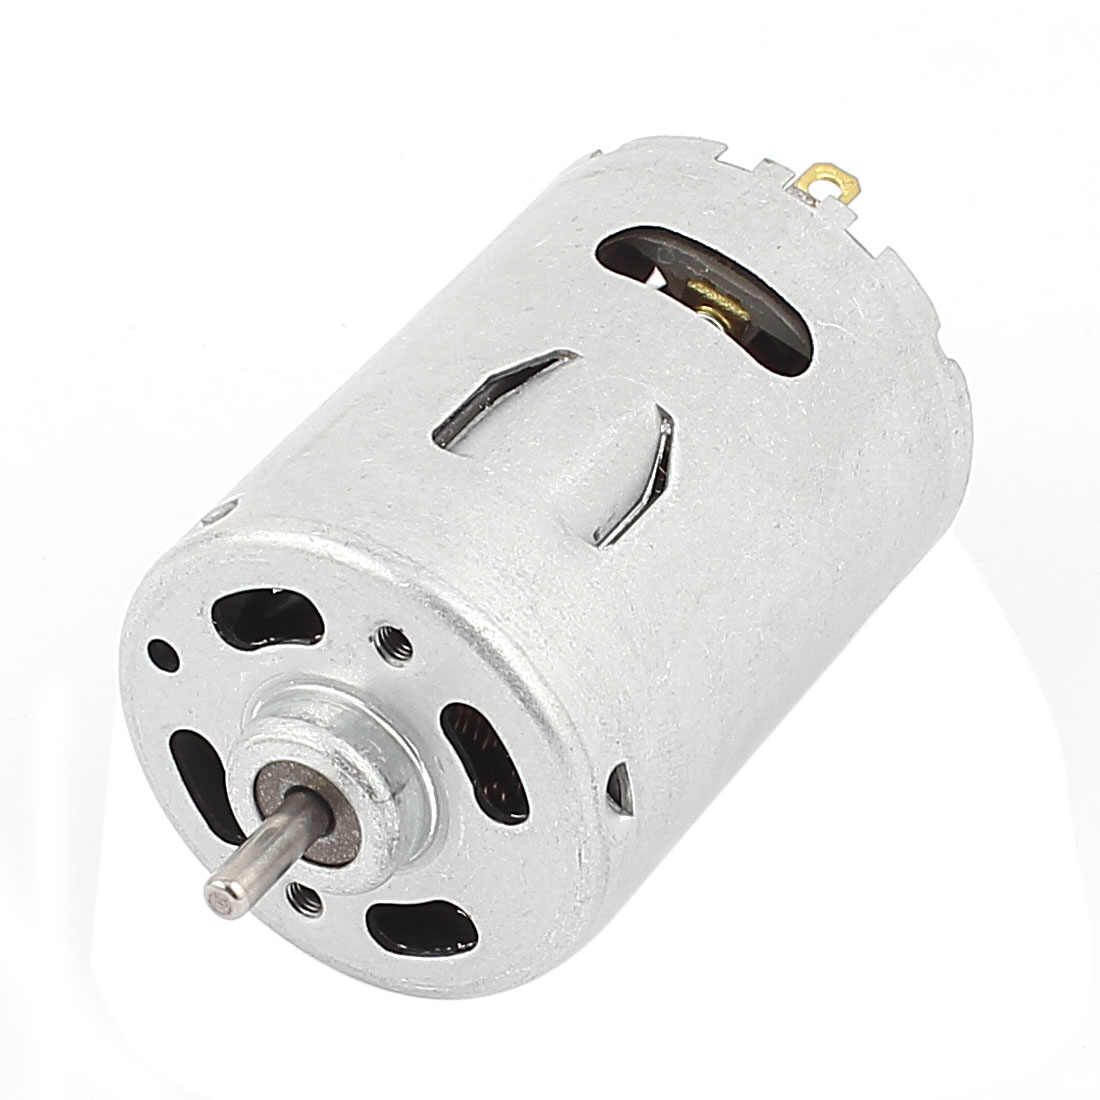 DC 12V 10200RPM Output Rotary Speed High Torque Cylinder Shape Motor